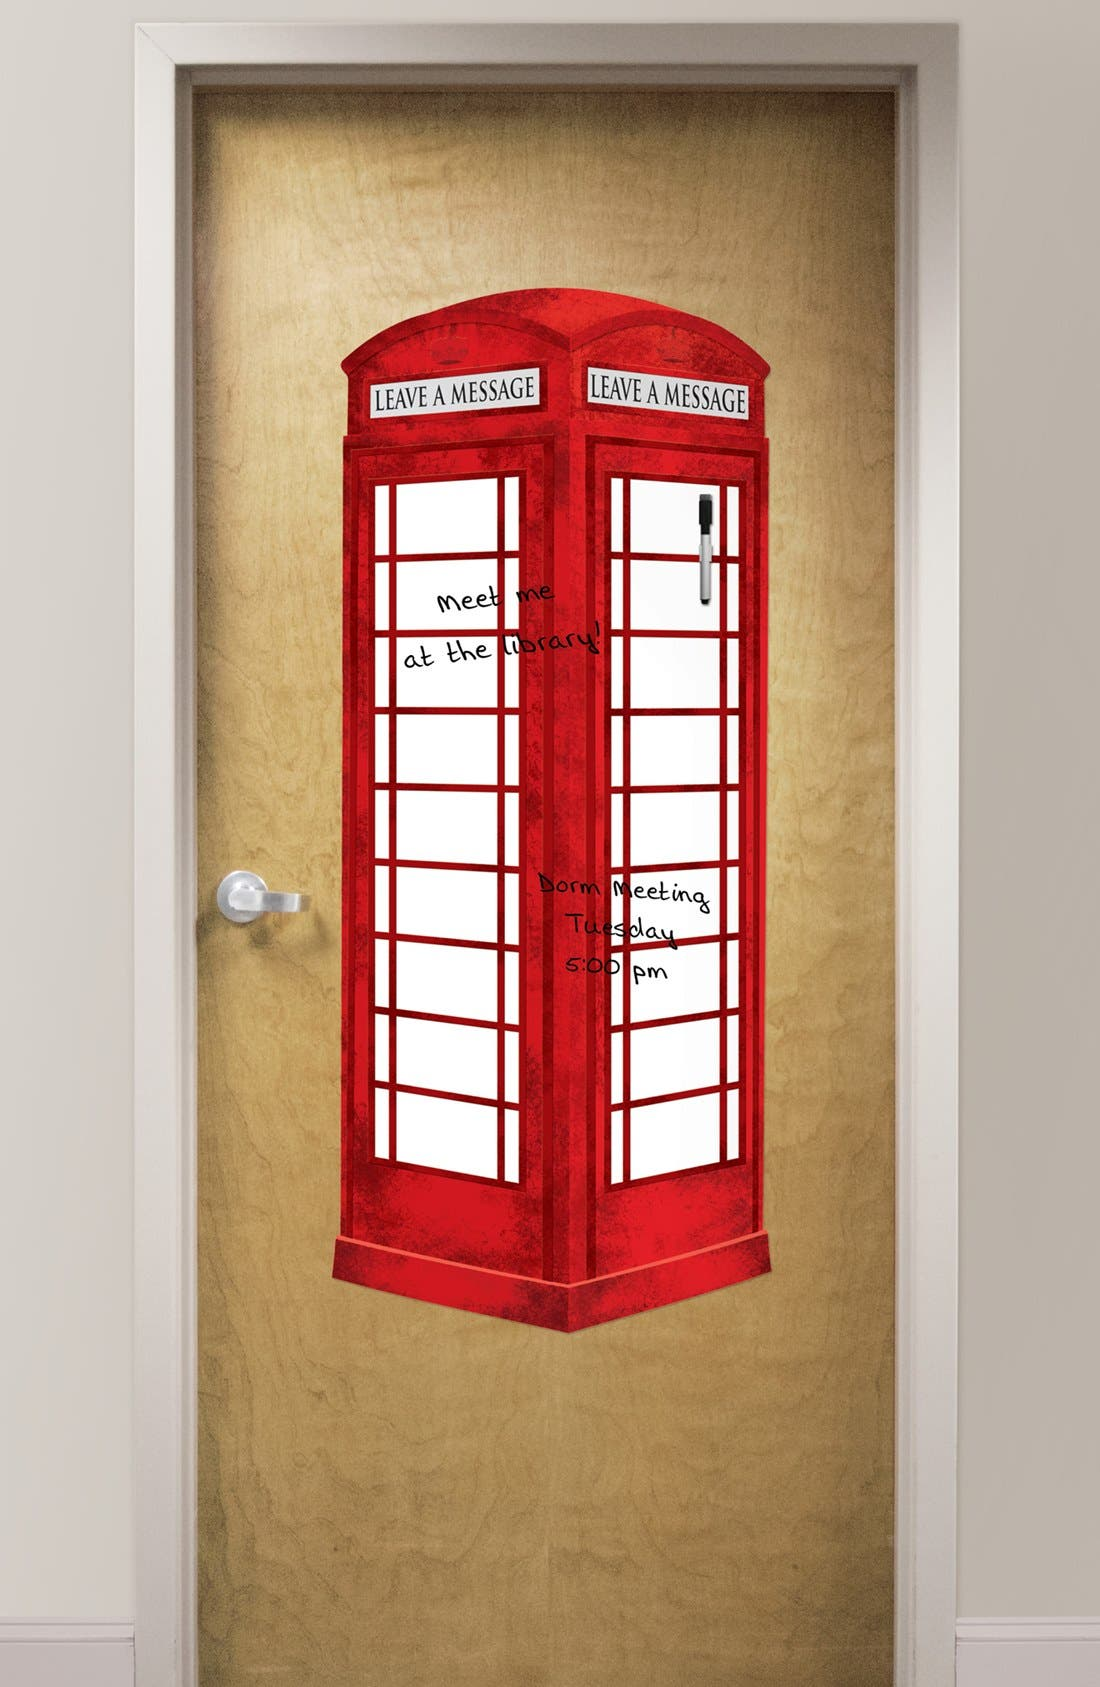 Alternate Image 1 Selected - Wallpops London Phone Booth Dry Erase Board